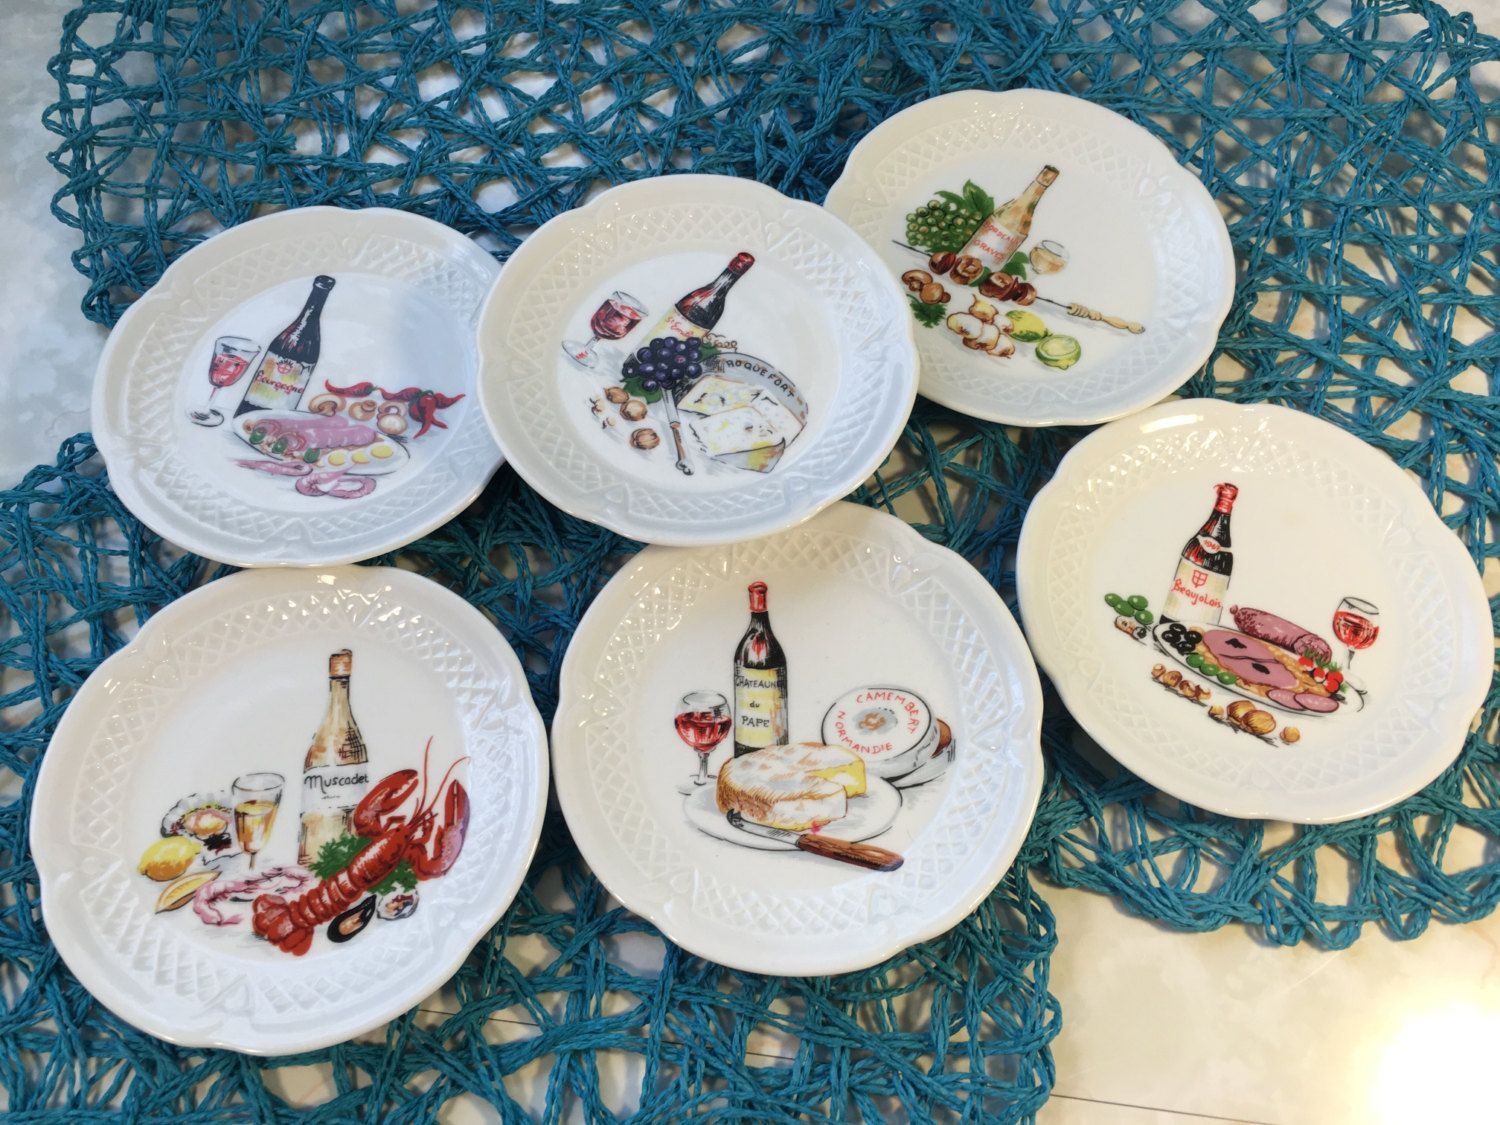 Vintage Philipee Deshoulieres Porcelaines Lourioux France French Appetizer Cheese Plates Set of 6 by TheTravelingTwins & Vintage Philipee Deshoulieres Porcelaines Lourioux France French ...